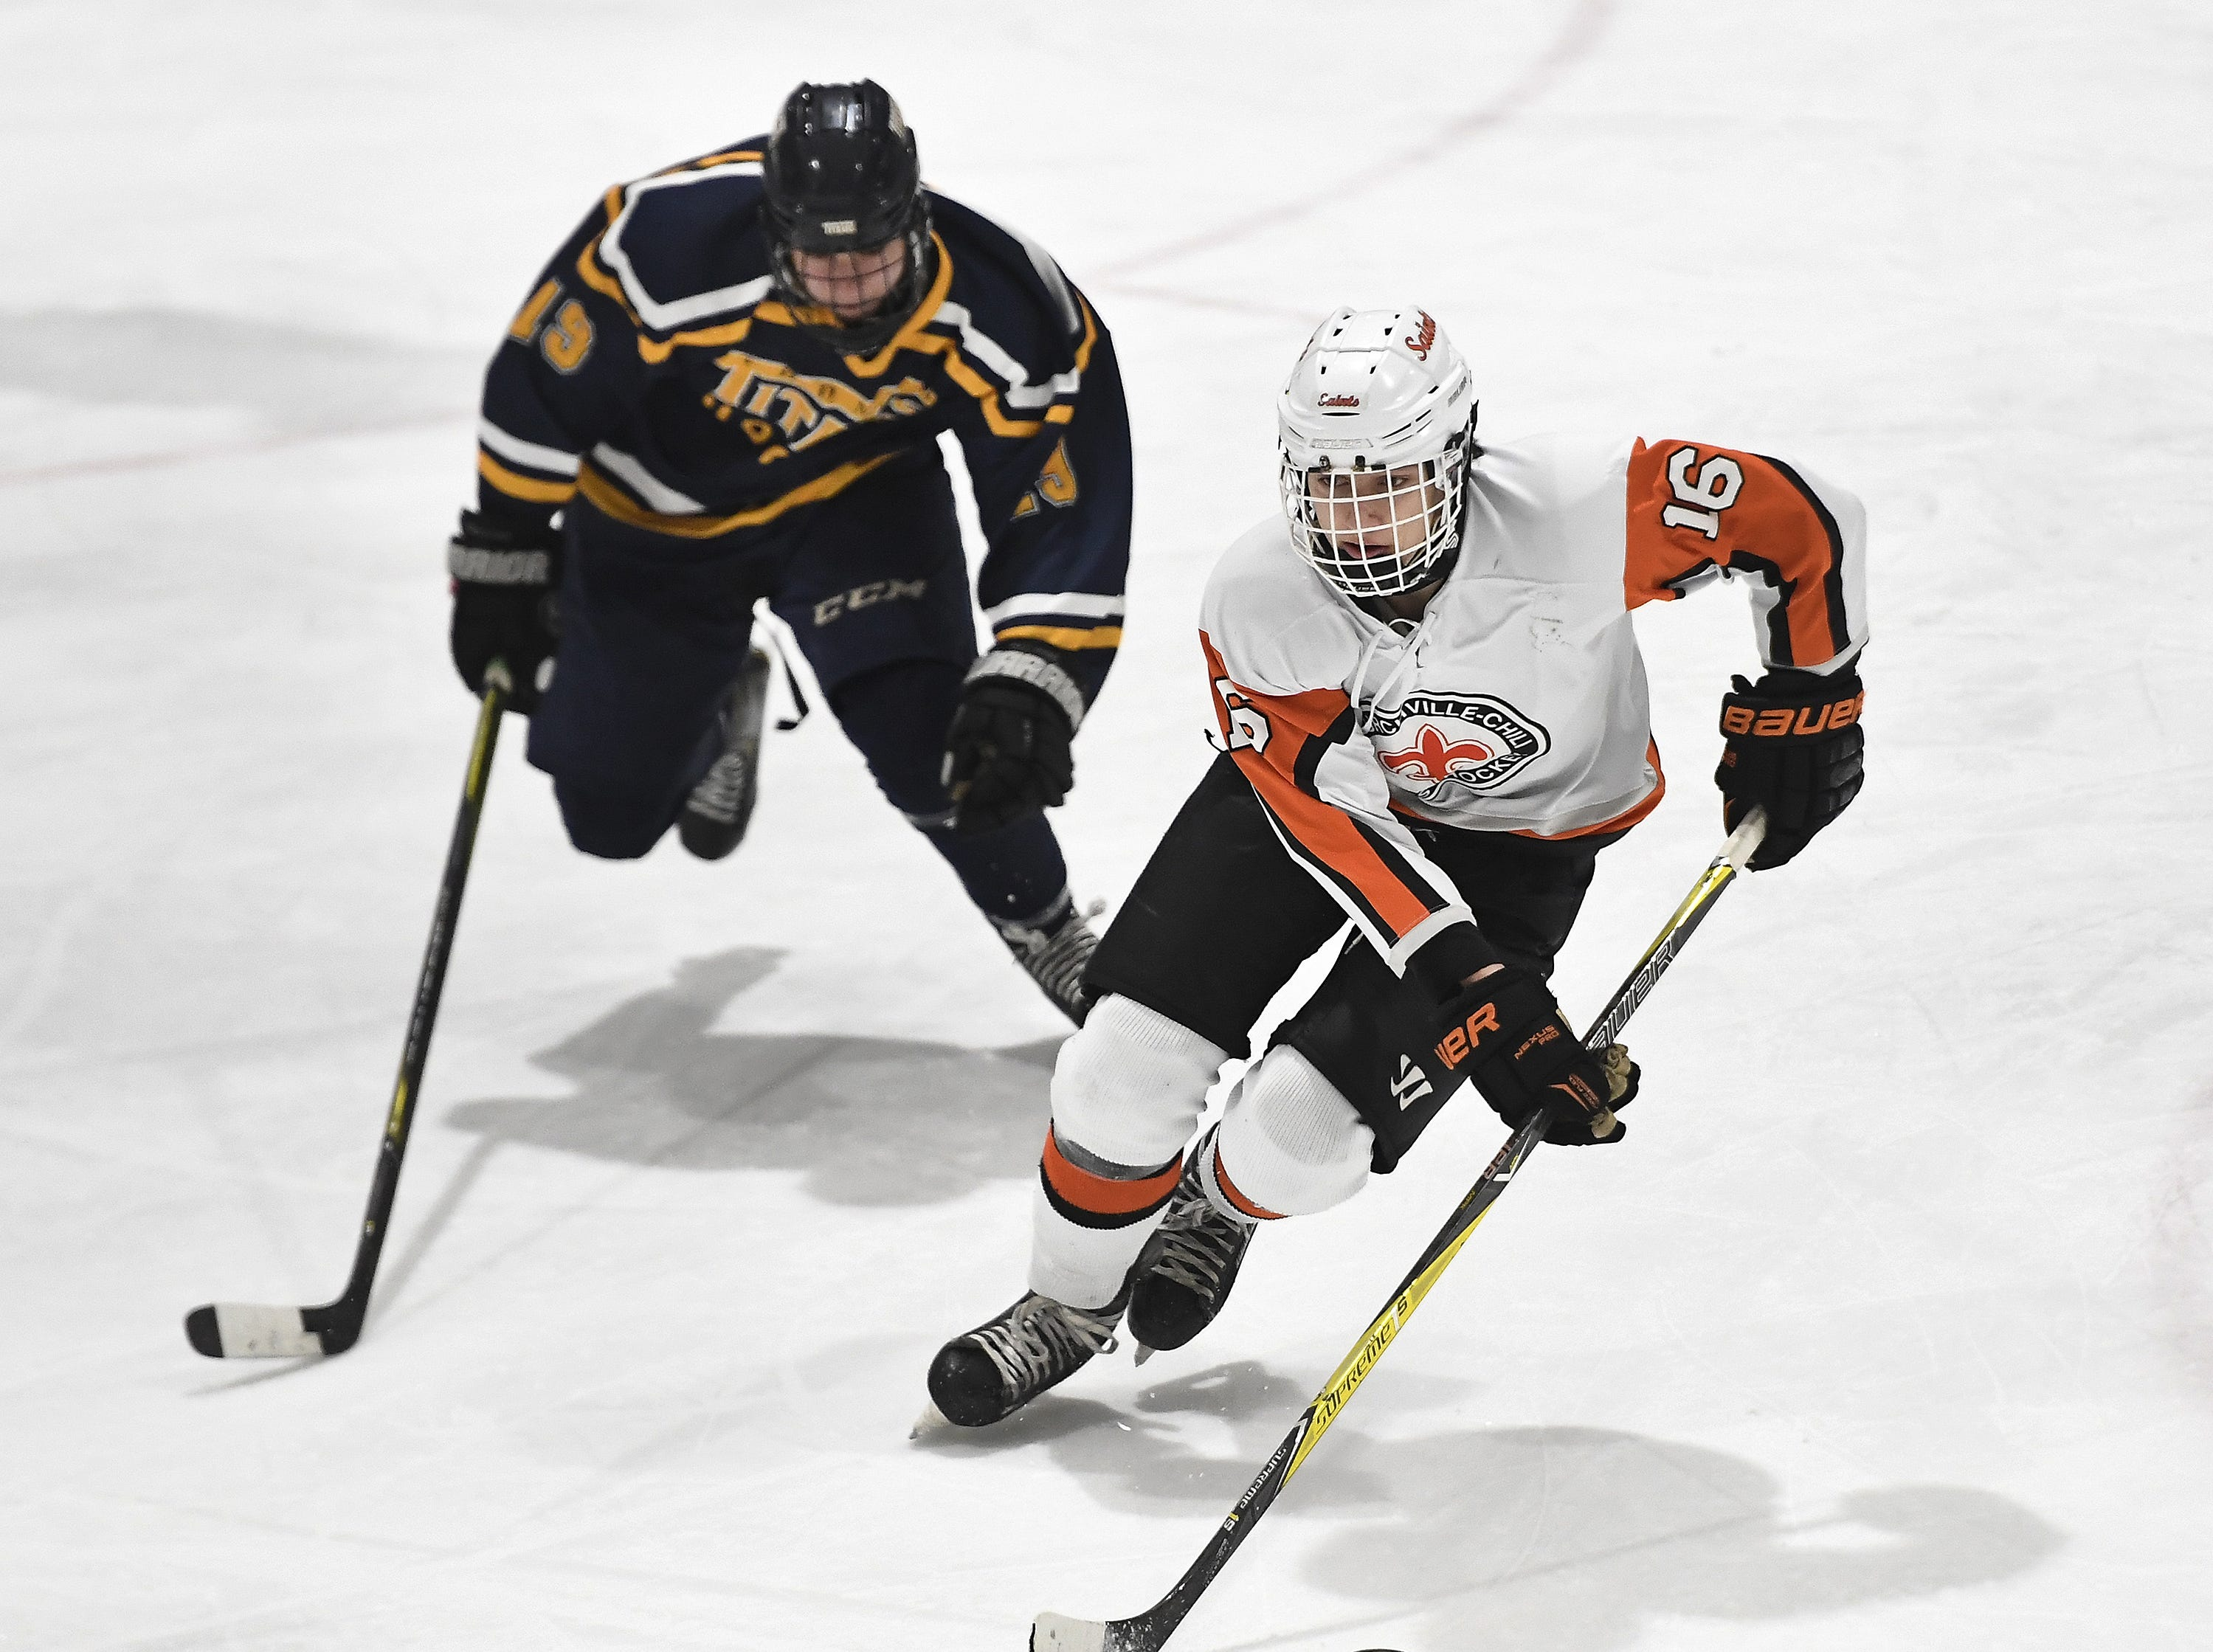 Churchville-Chili's Luke Molnar, right, skates the puck away from Webster Thomas' Tommy Ammon during a regular season game played at the Scottsville Ice Arena, Tuesday, Jan. 22, 2019. Webster Thomas beat Chuchville-Chili 4-1.